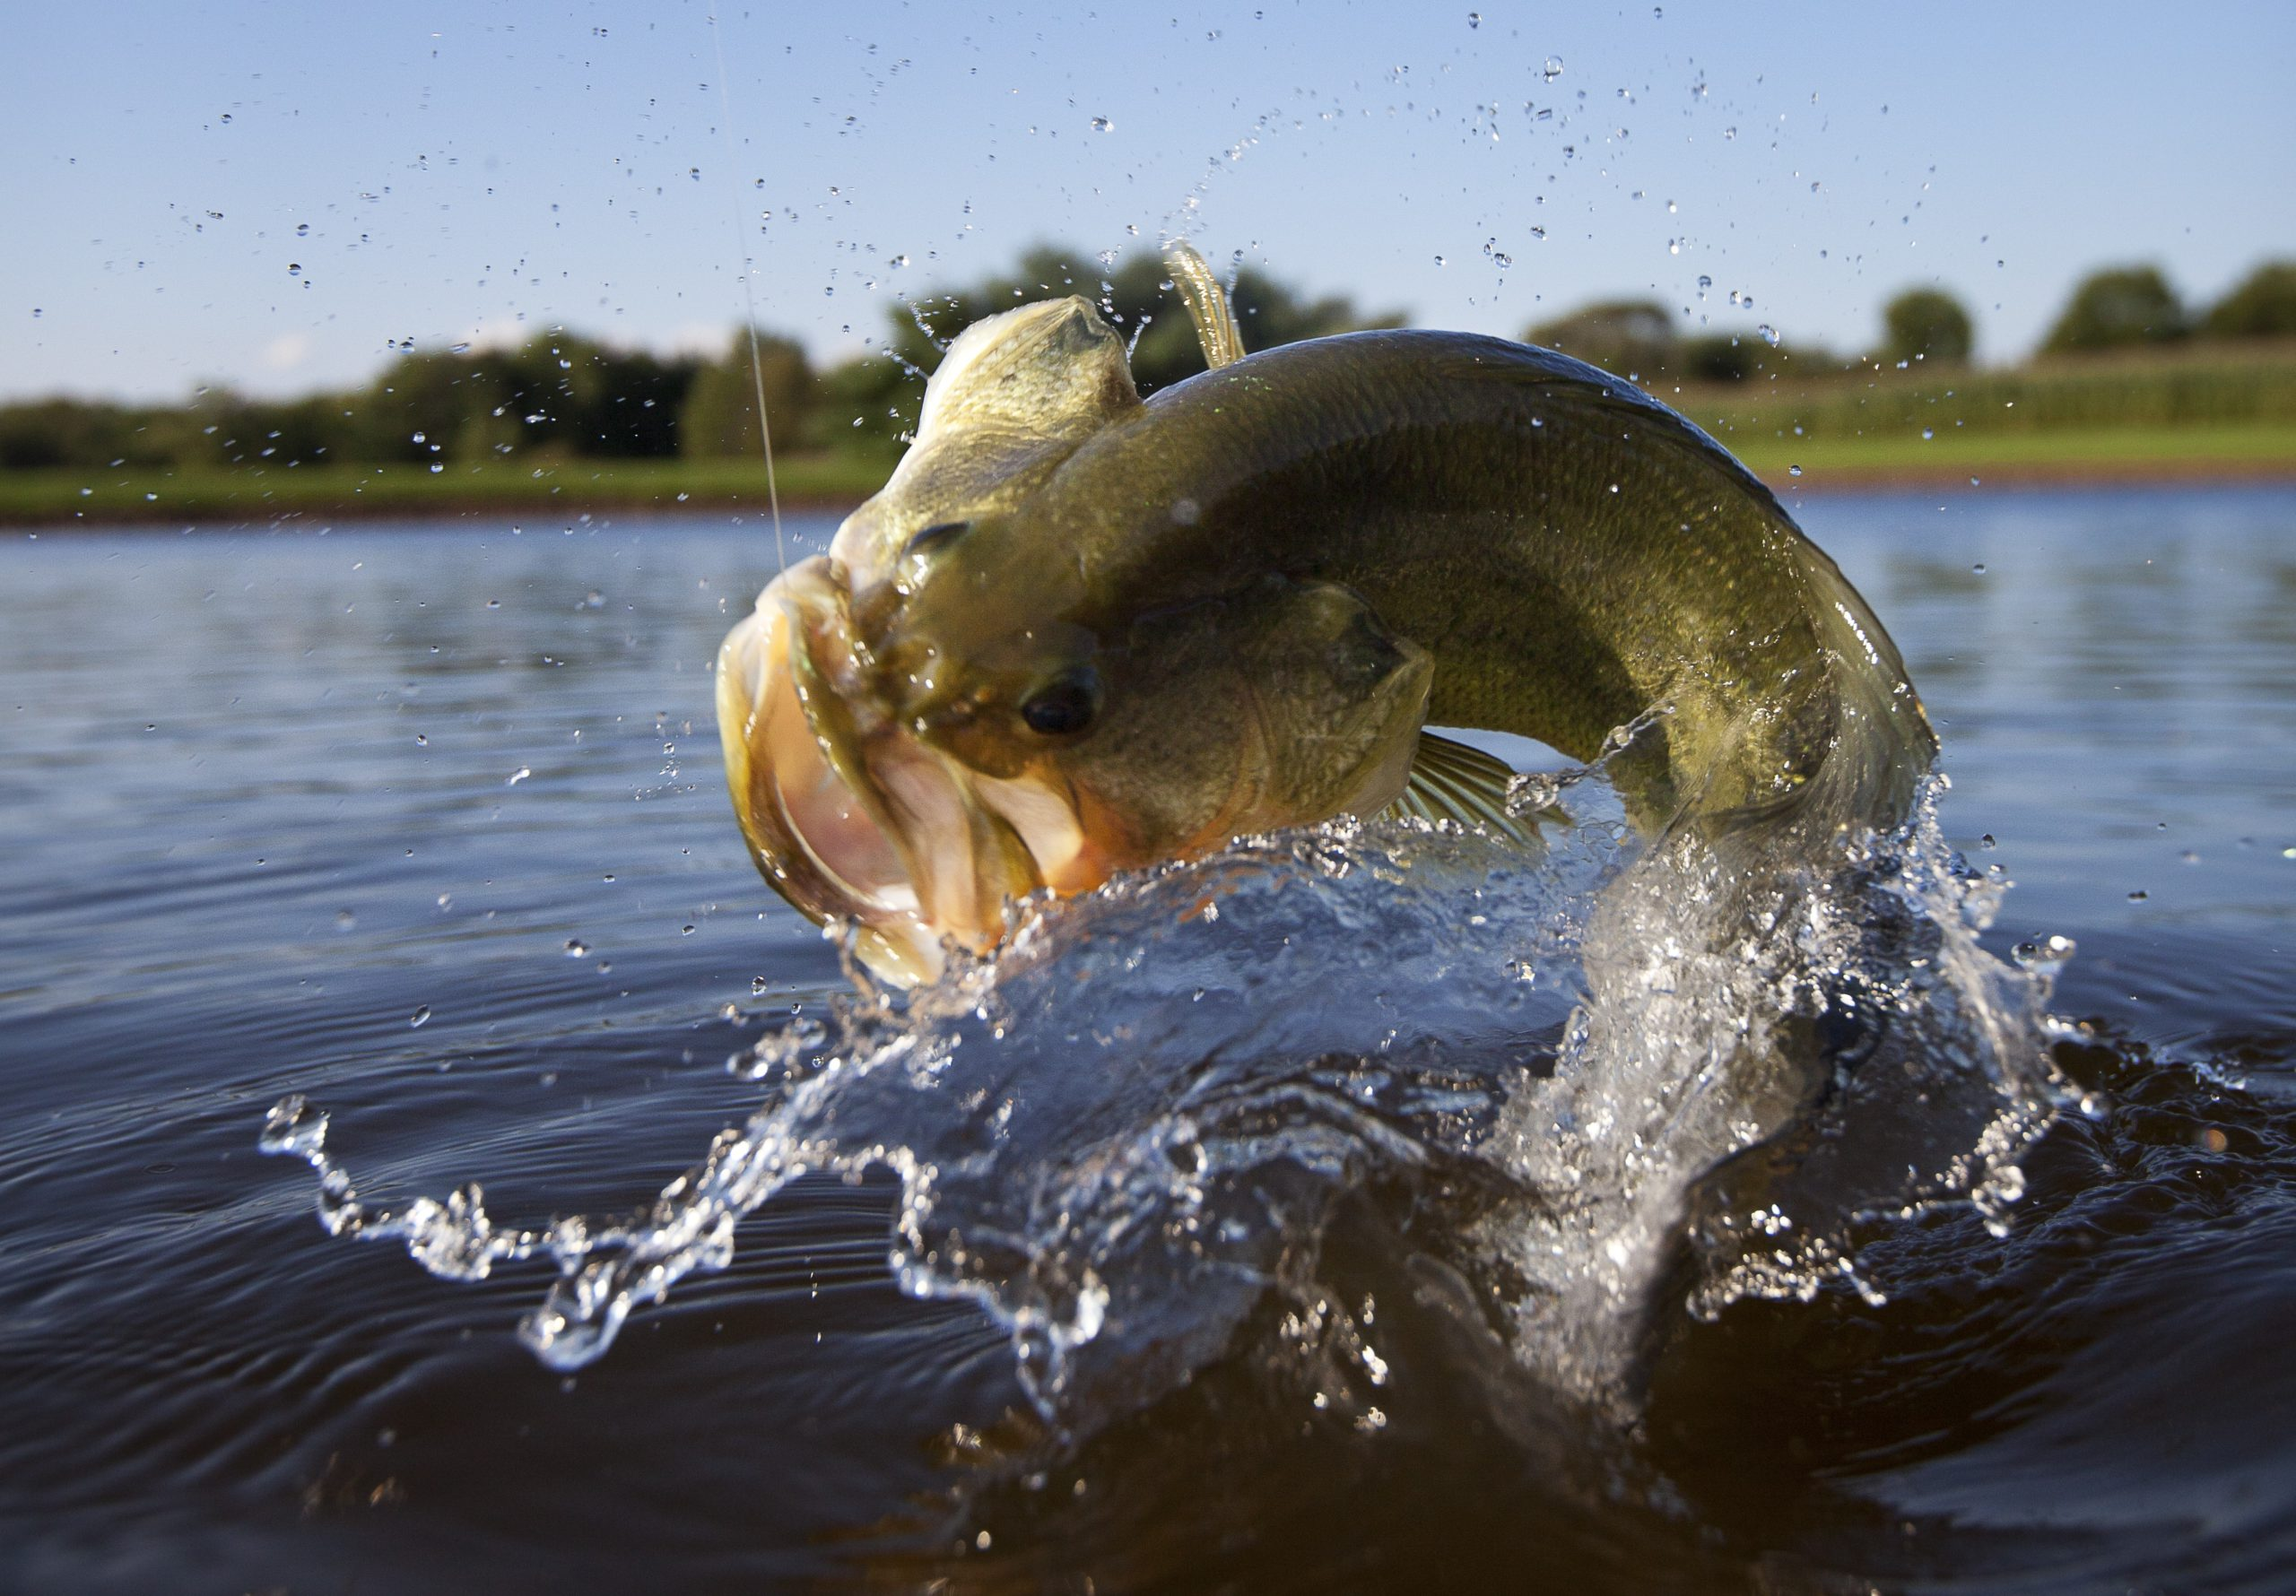 Largemouth bass fishing jumping out of water with hook in its mouth.